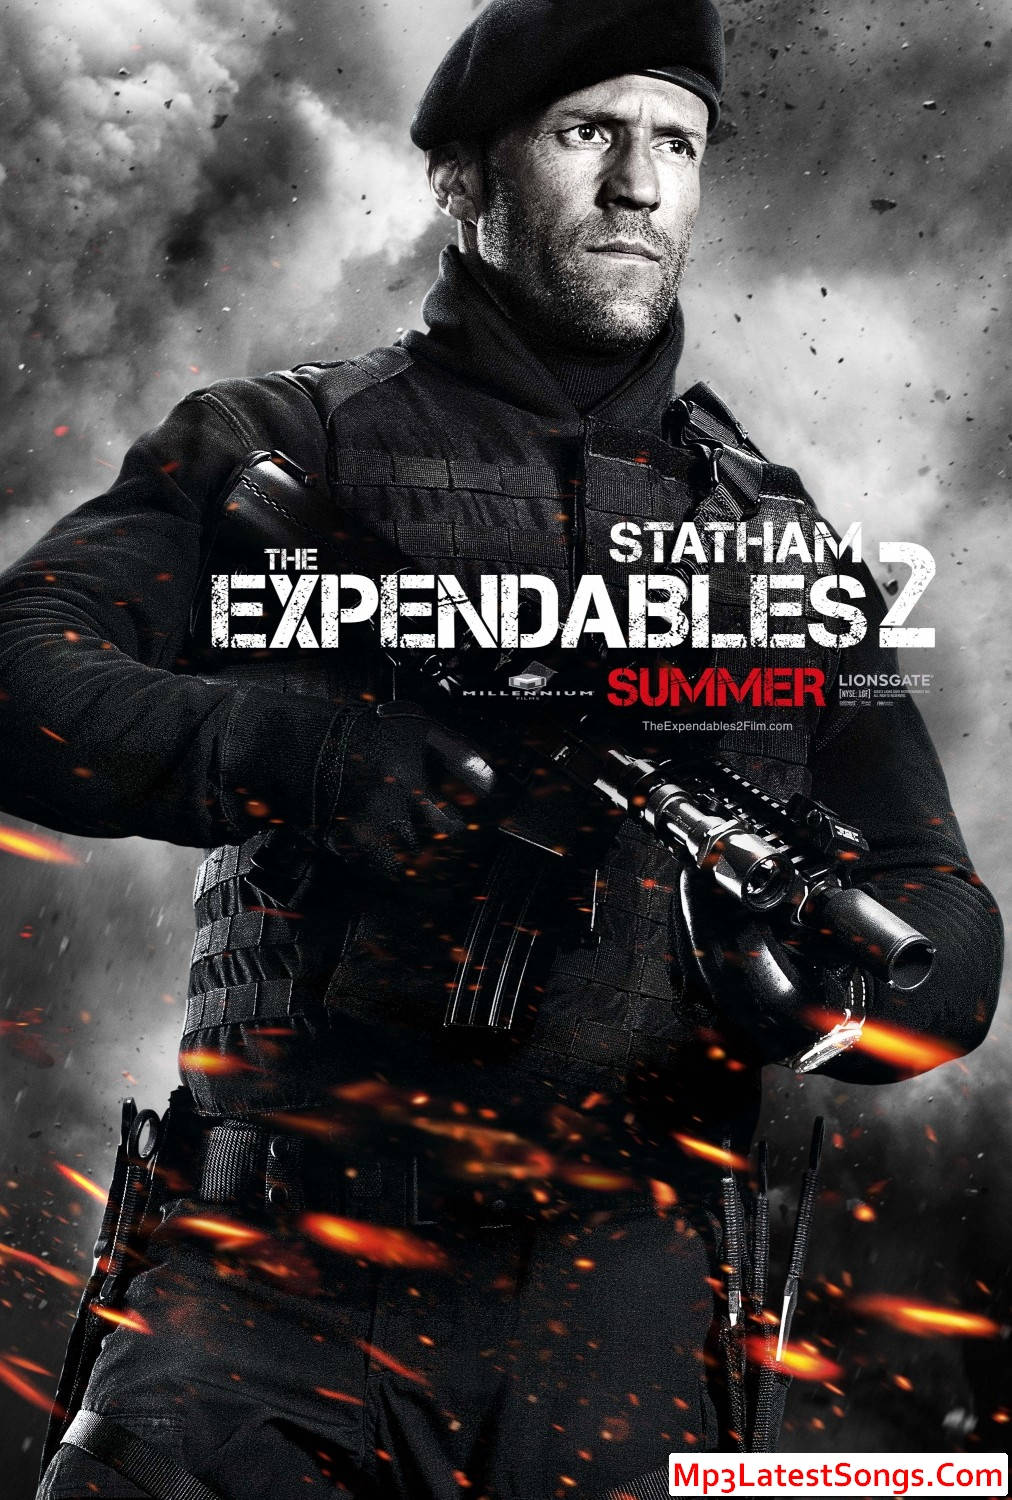 SongsBlasts: Watch The Expendables 2 Free Online Movies ...